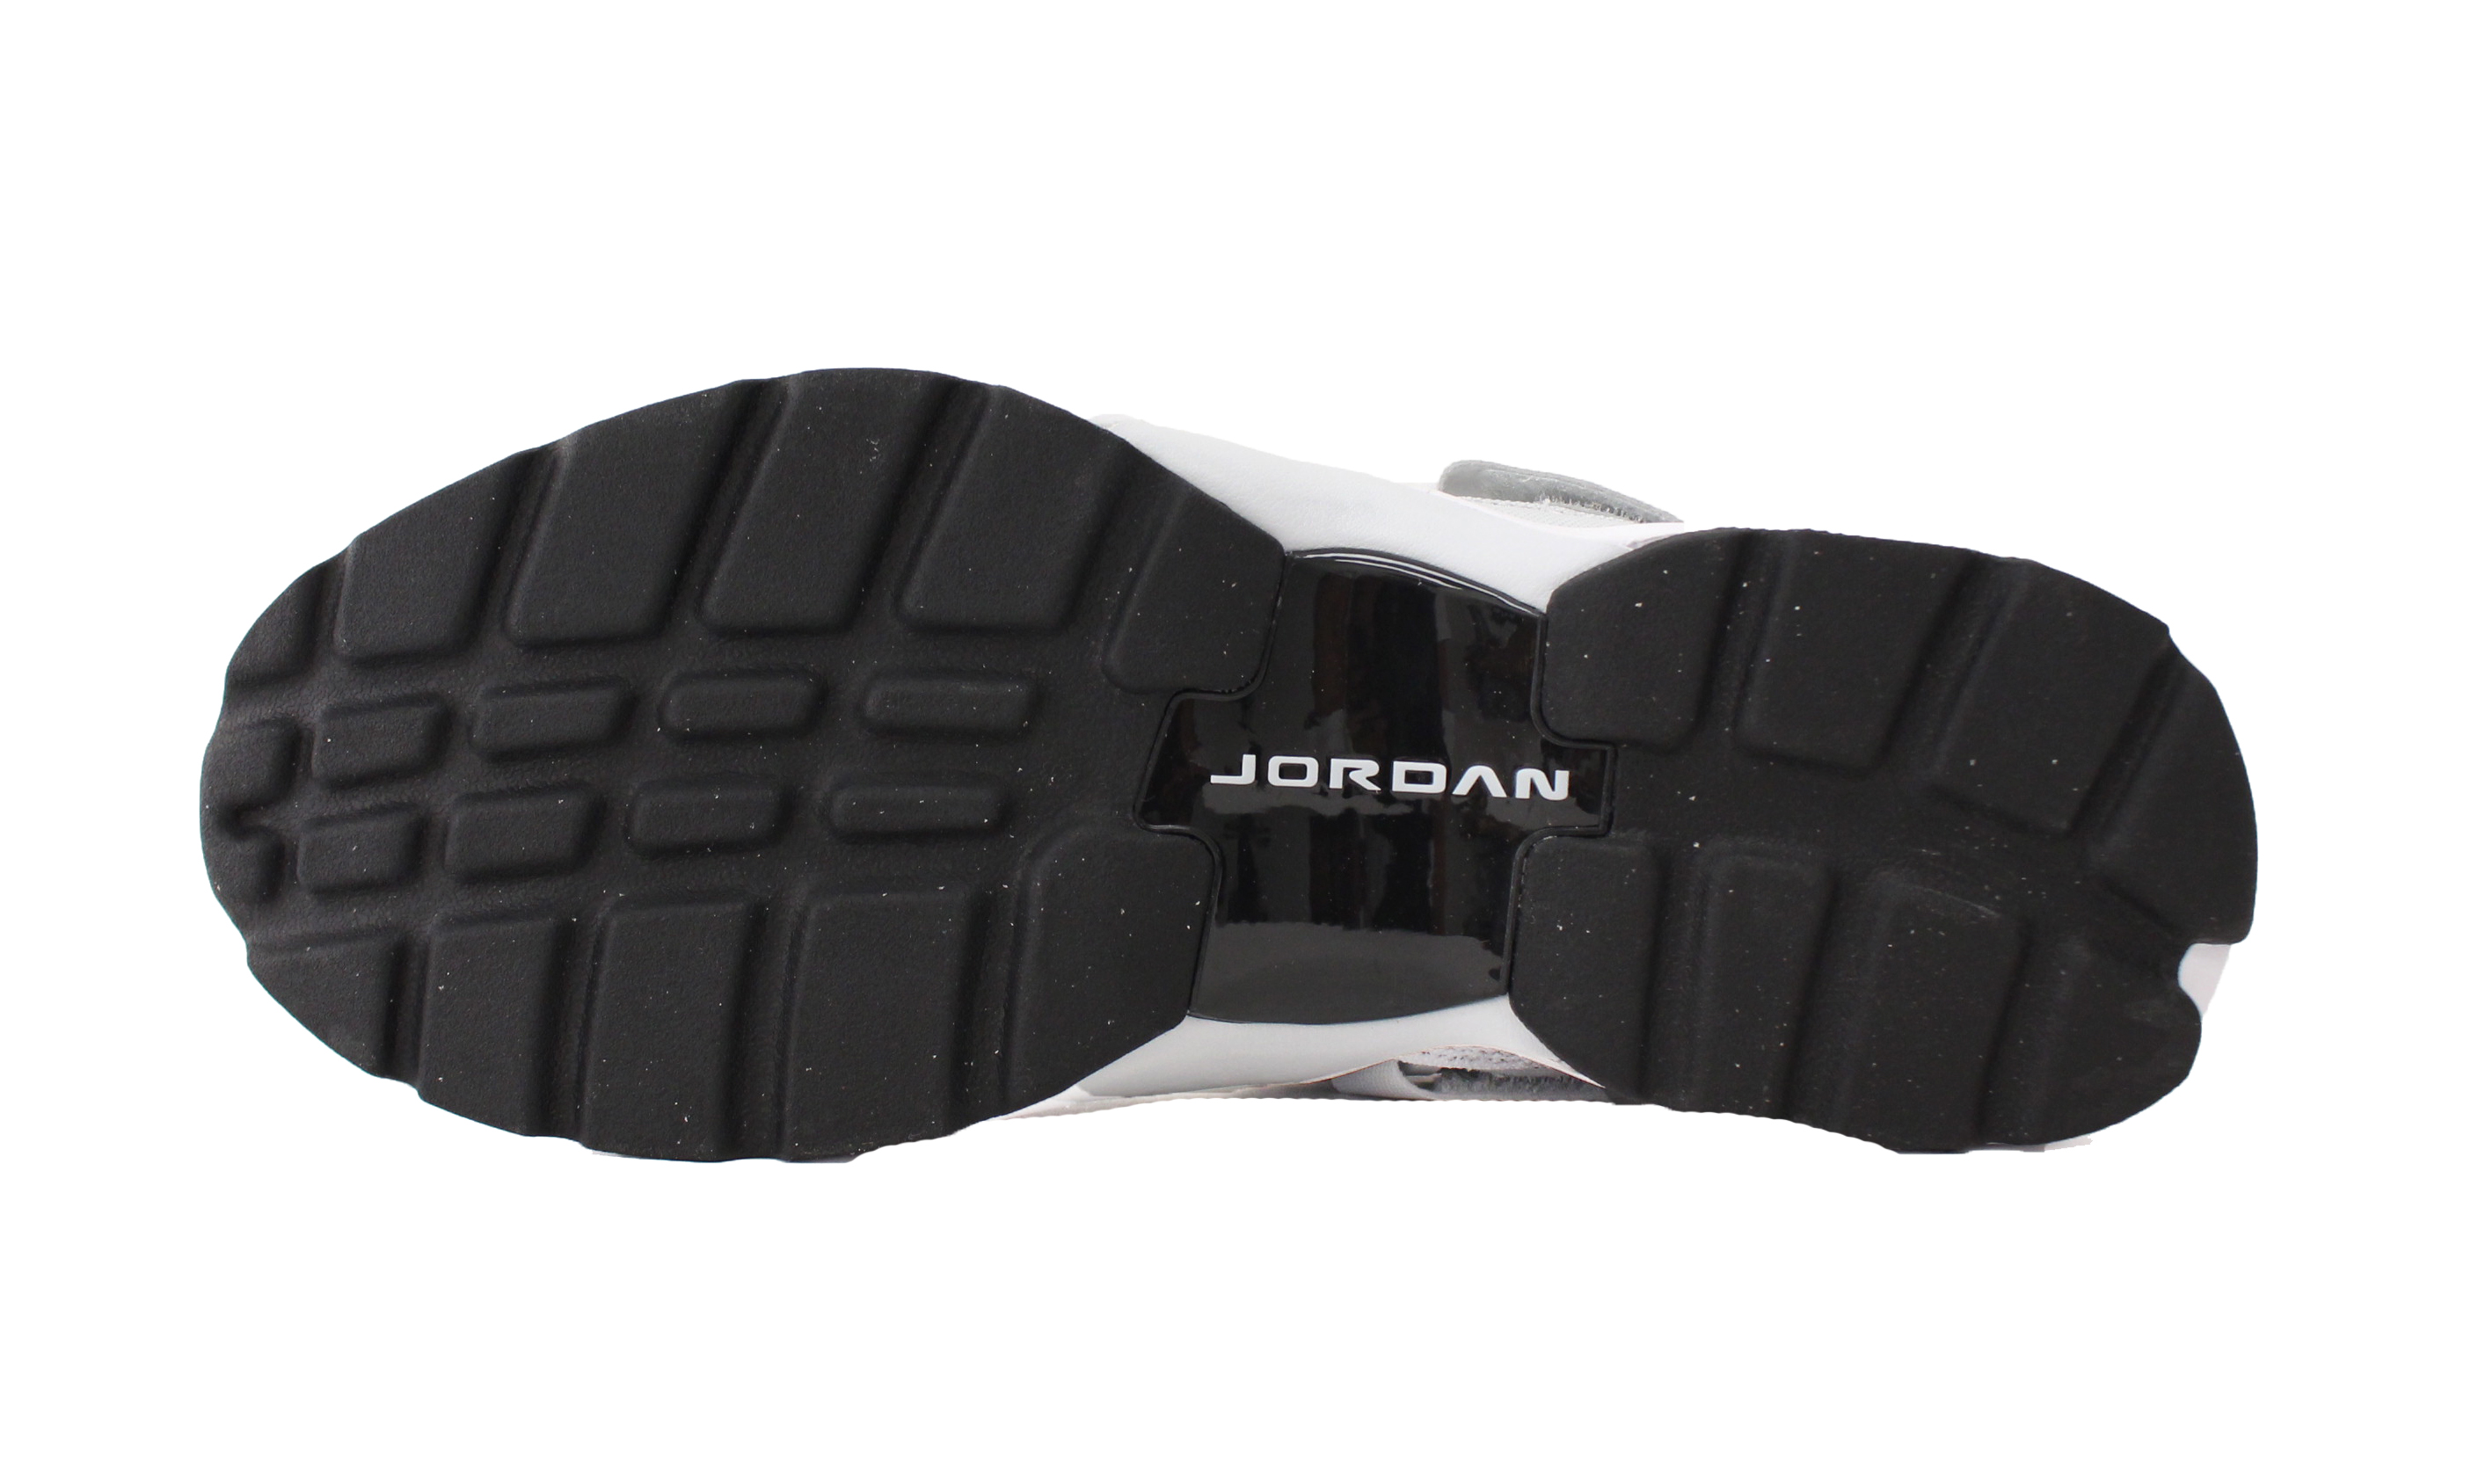 Jordan - AIR JORDAN TRUNNER LX HIGH SZ 9.5 PURE PLATINUM BLACK WHITE AA1347  002 - Walmart.com 9f5e1a0cd